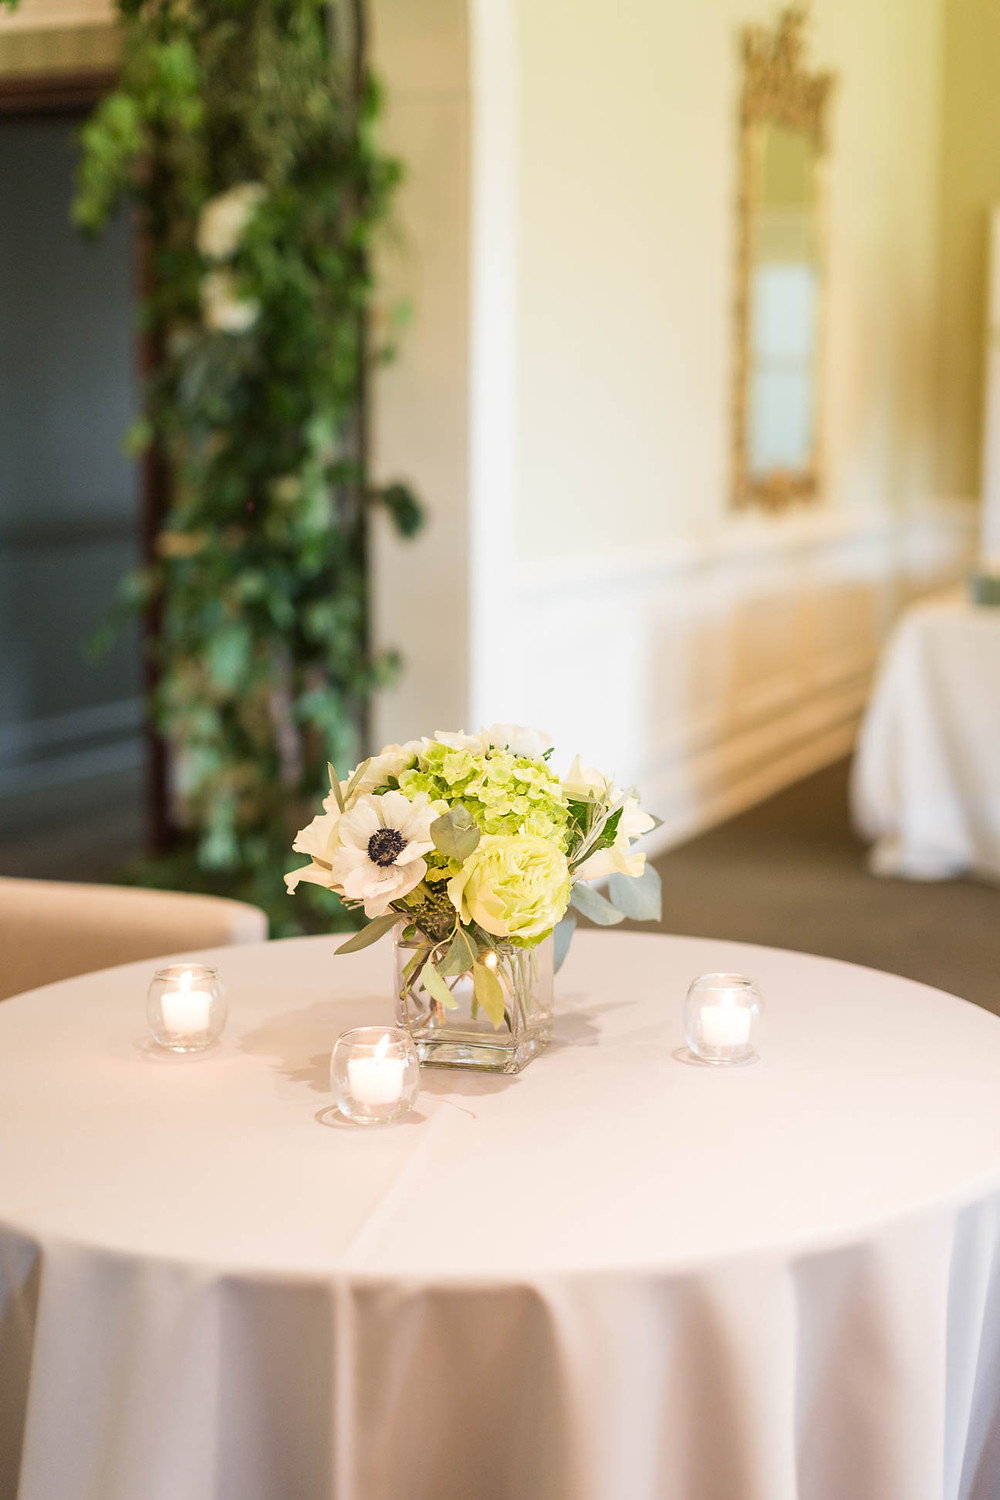 green and white florals on a table at the reception